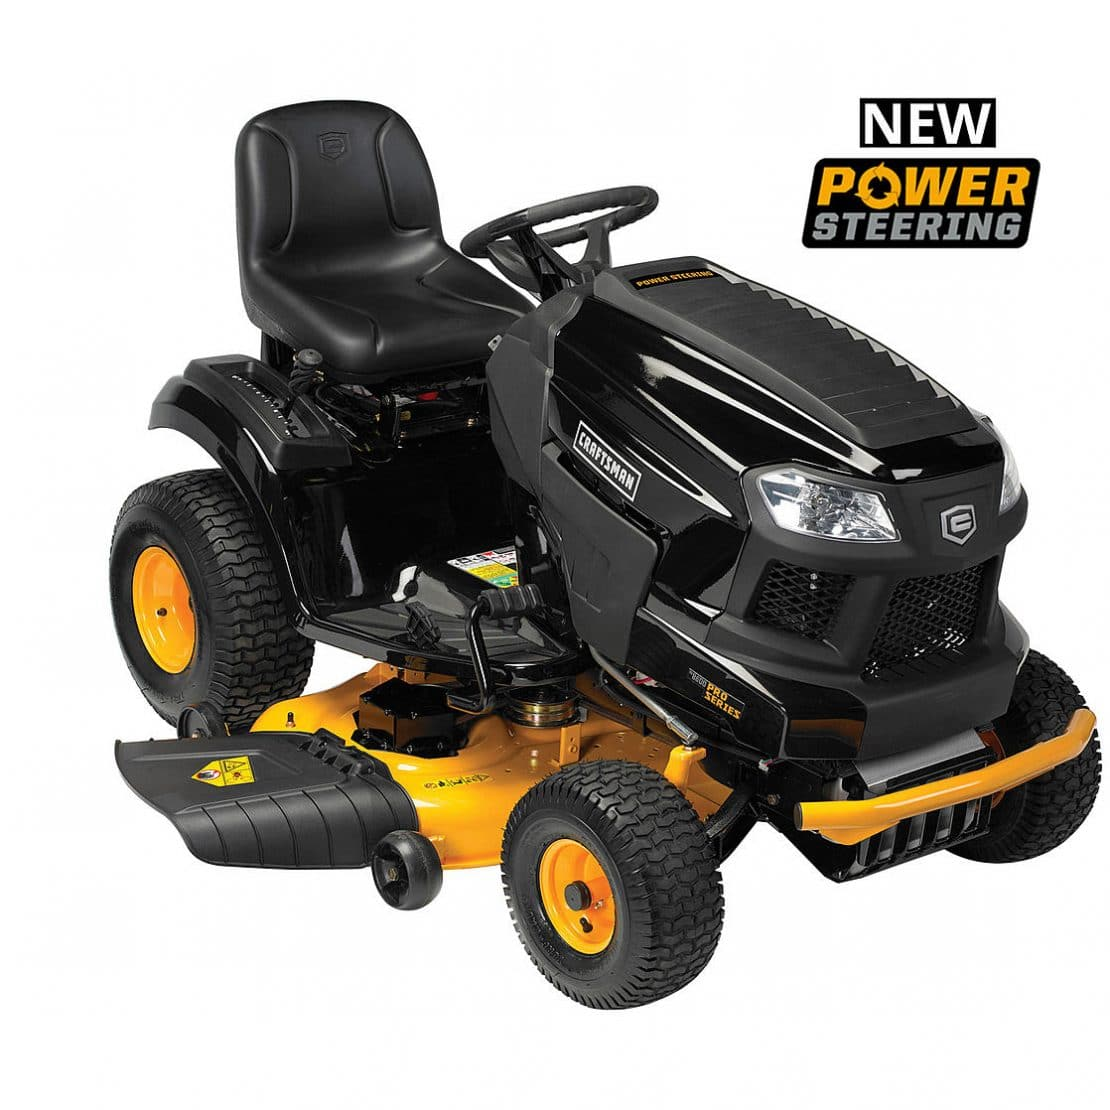 2018 Craftsman Garden Tractor : Craftsman yard tractor line up one now with power